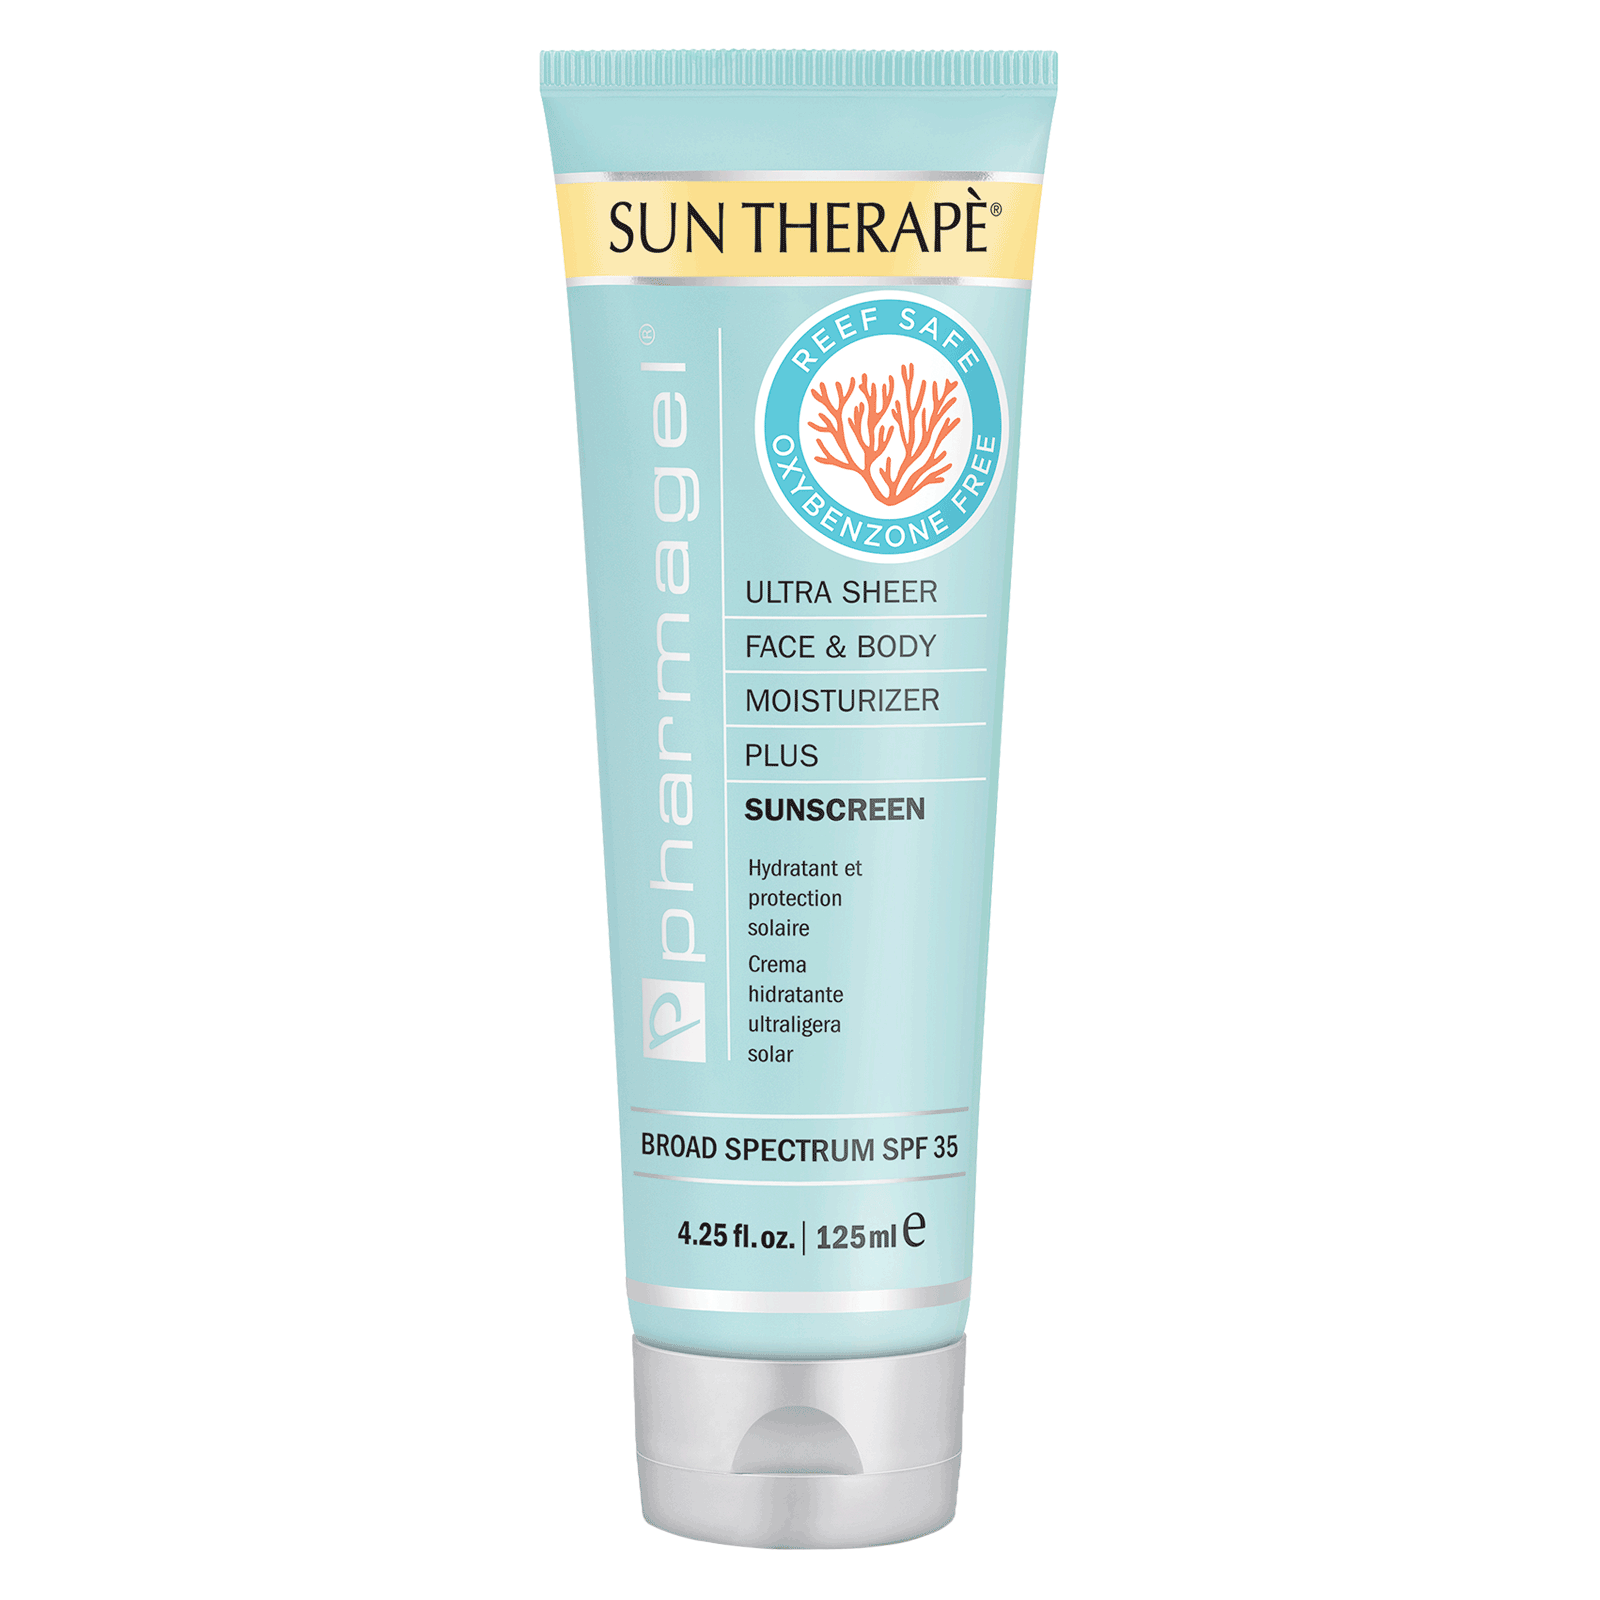 Sun Therape Face & Body Moisturizer